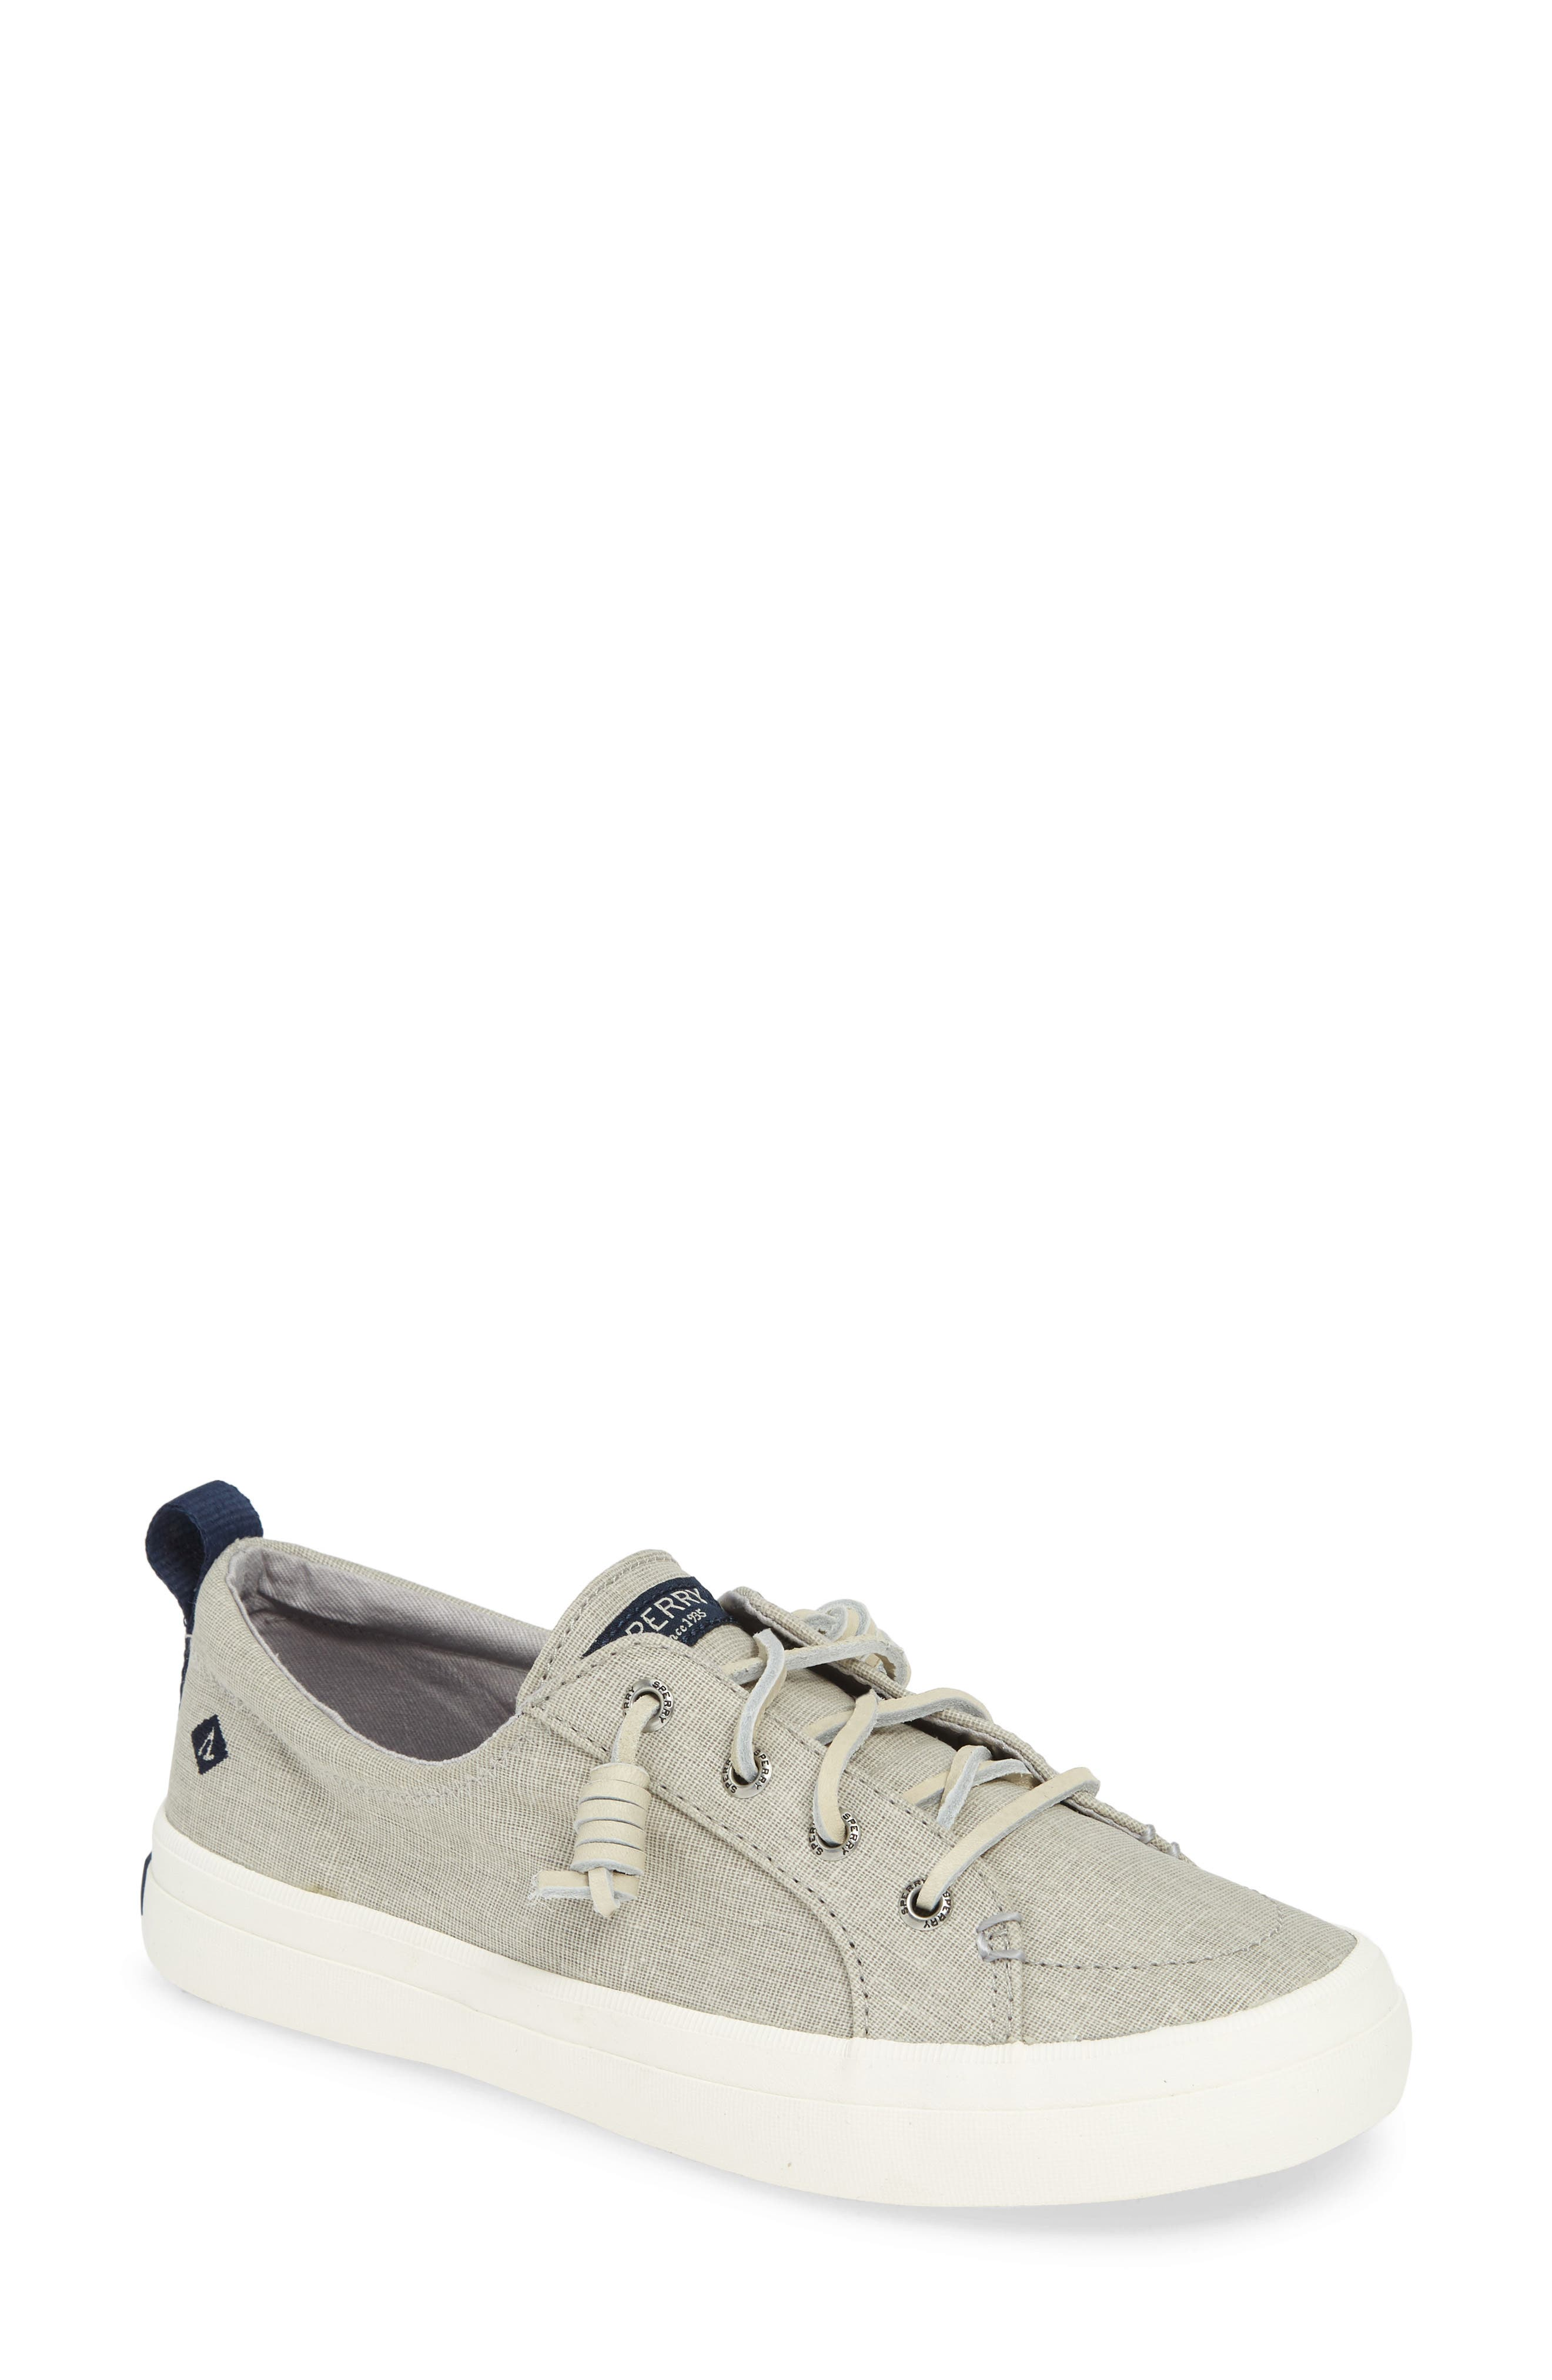 SPERRY Crest Vibe Sneaker, Main, color, GREY LINEN FABRIC